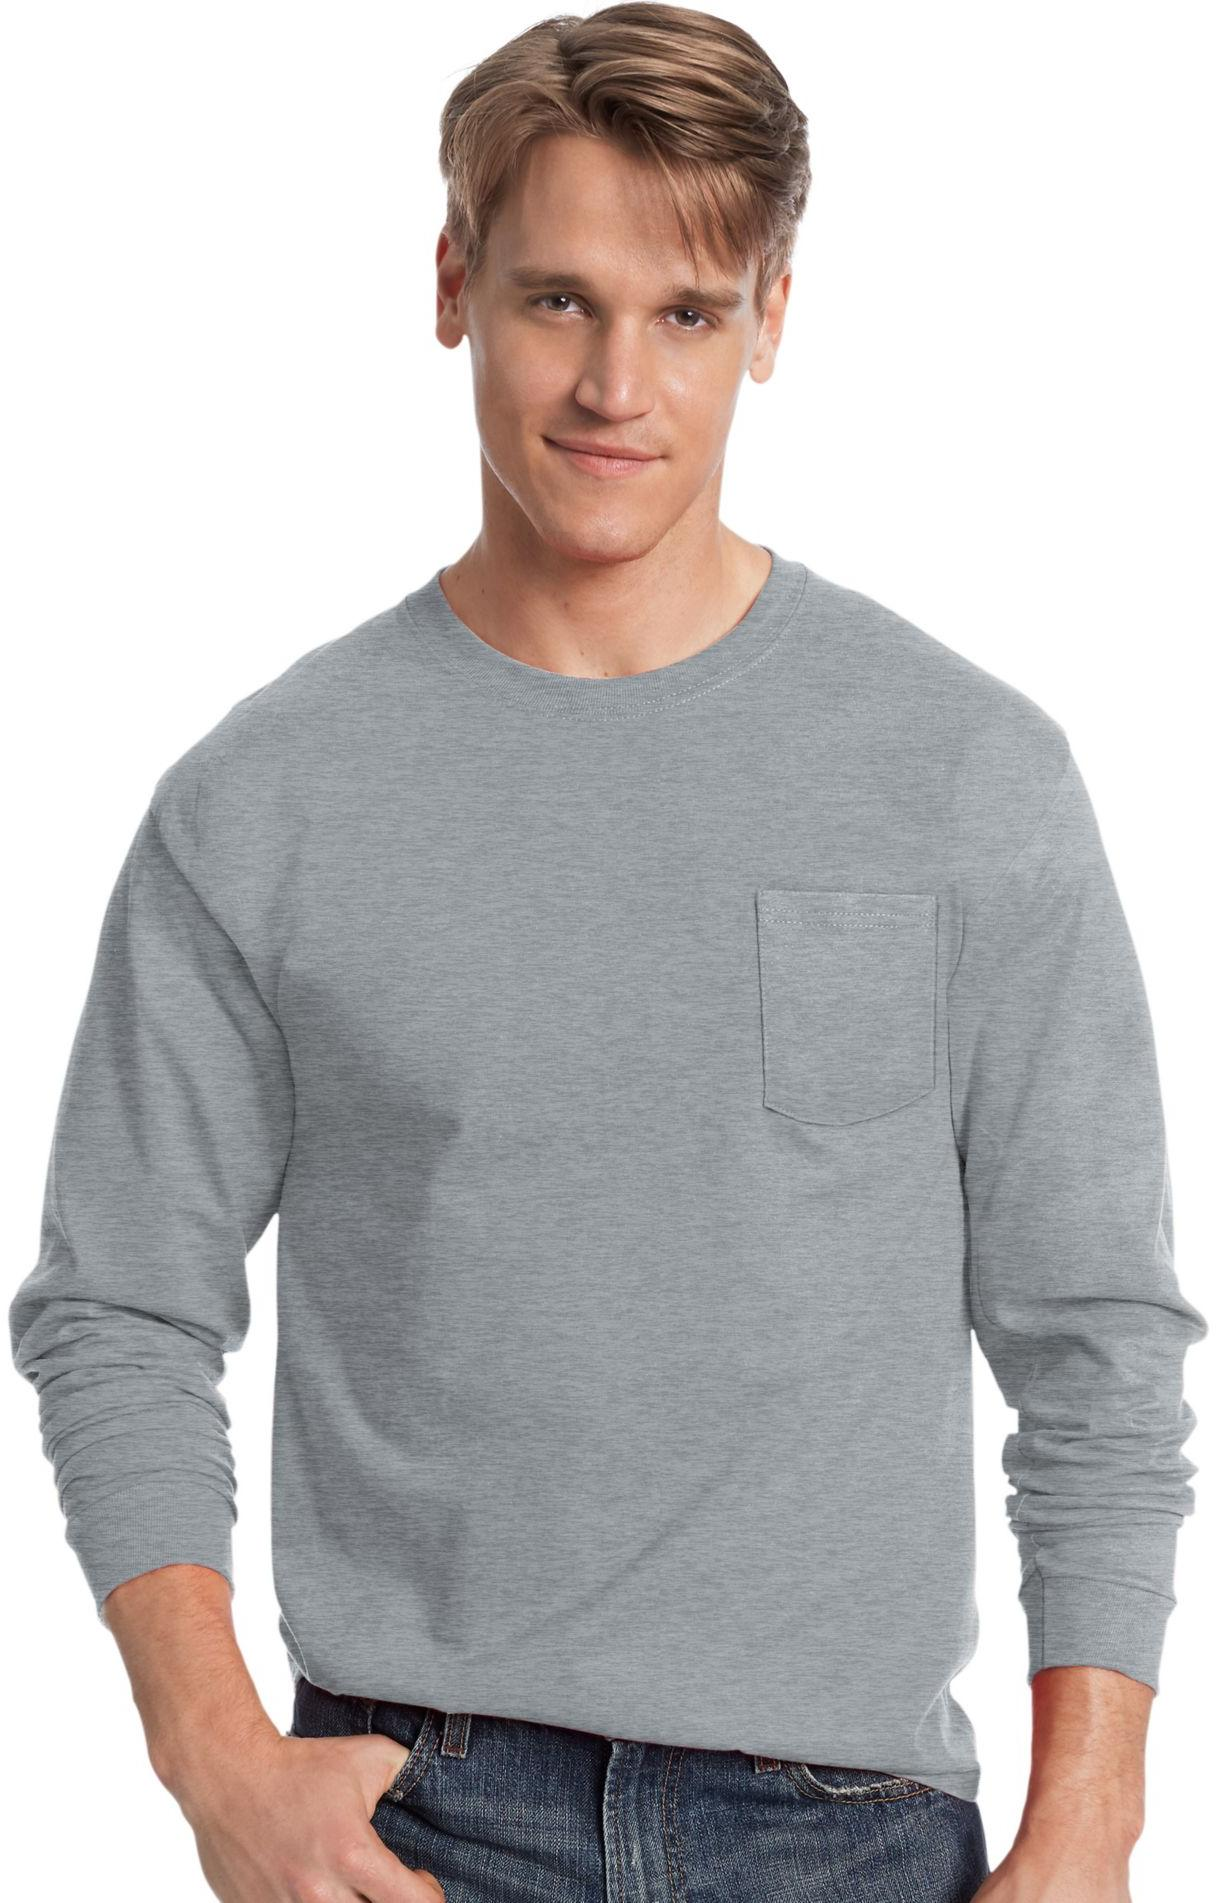 HANES Men's TAGLESS Long-Sleeve T-Shirt with Pocket - 5596 ...